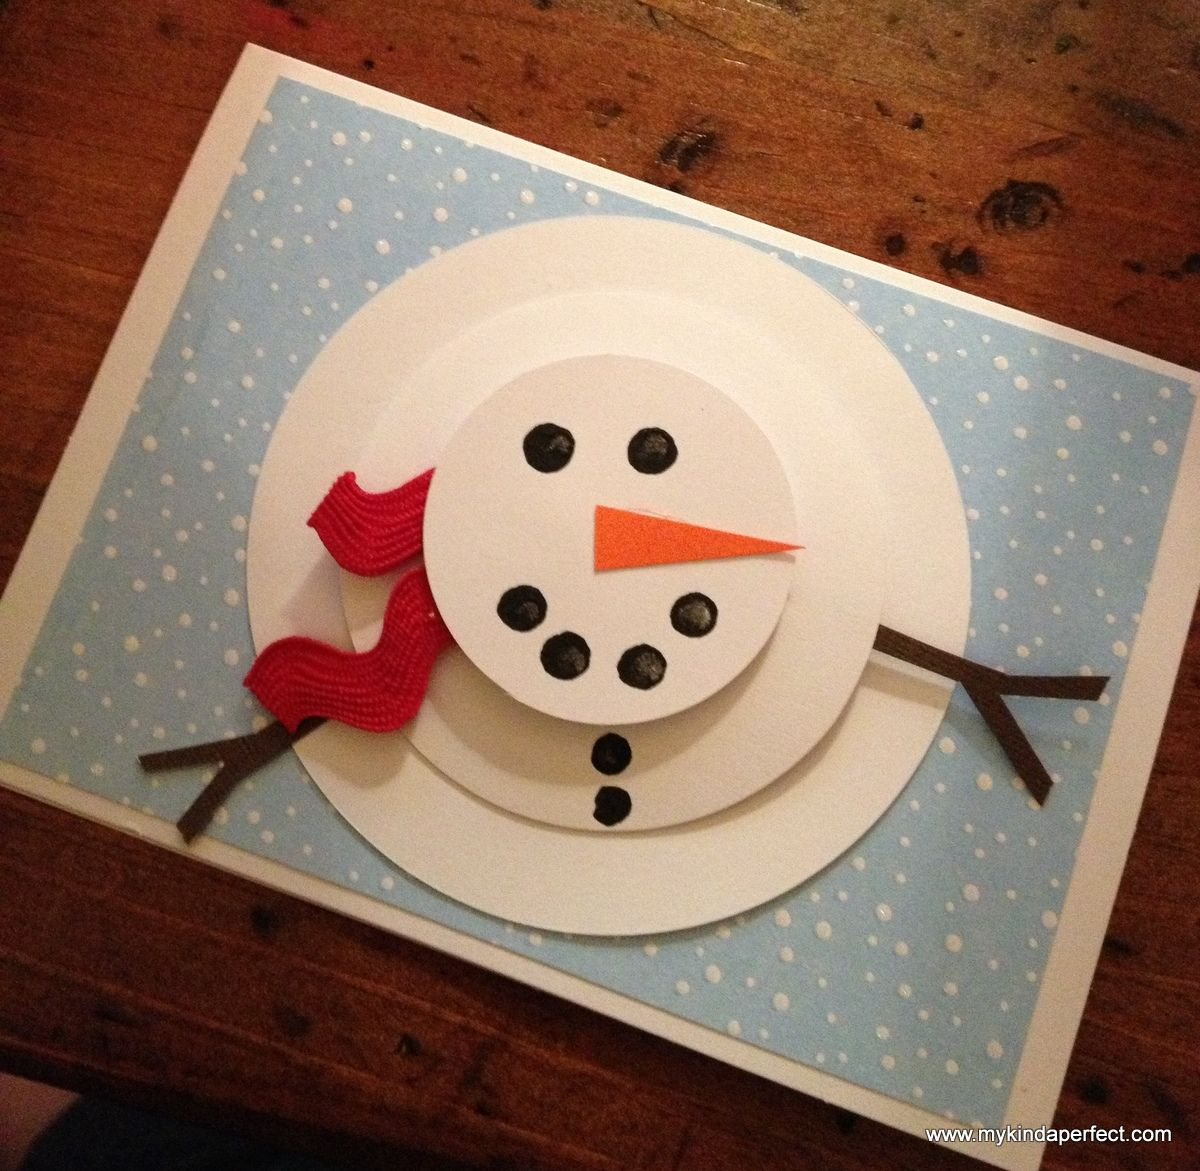 Snowman Christmas Cards Ideas.My Kinda Perfect Made With Love 2012 Handmade Christmas